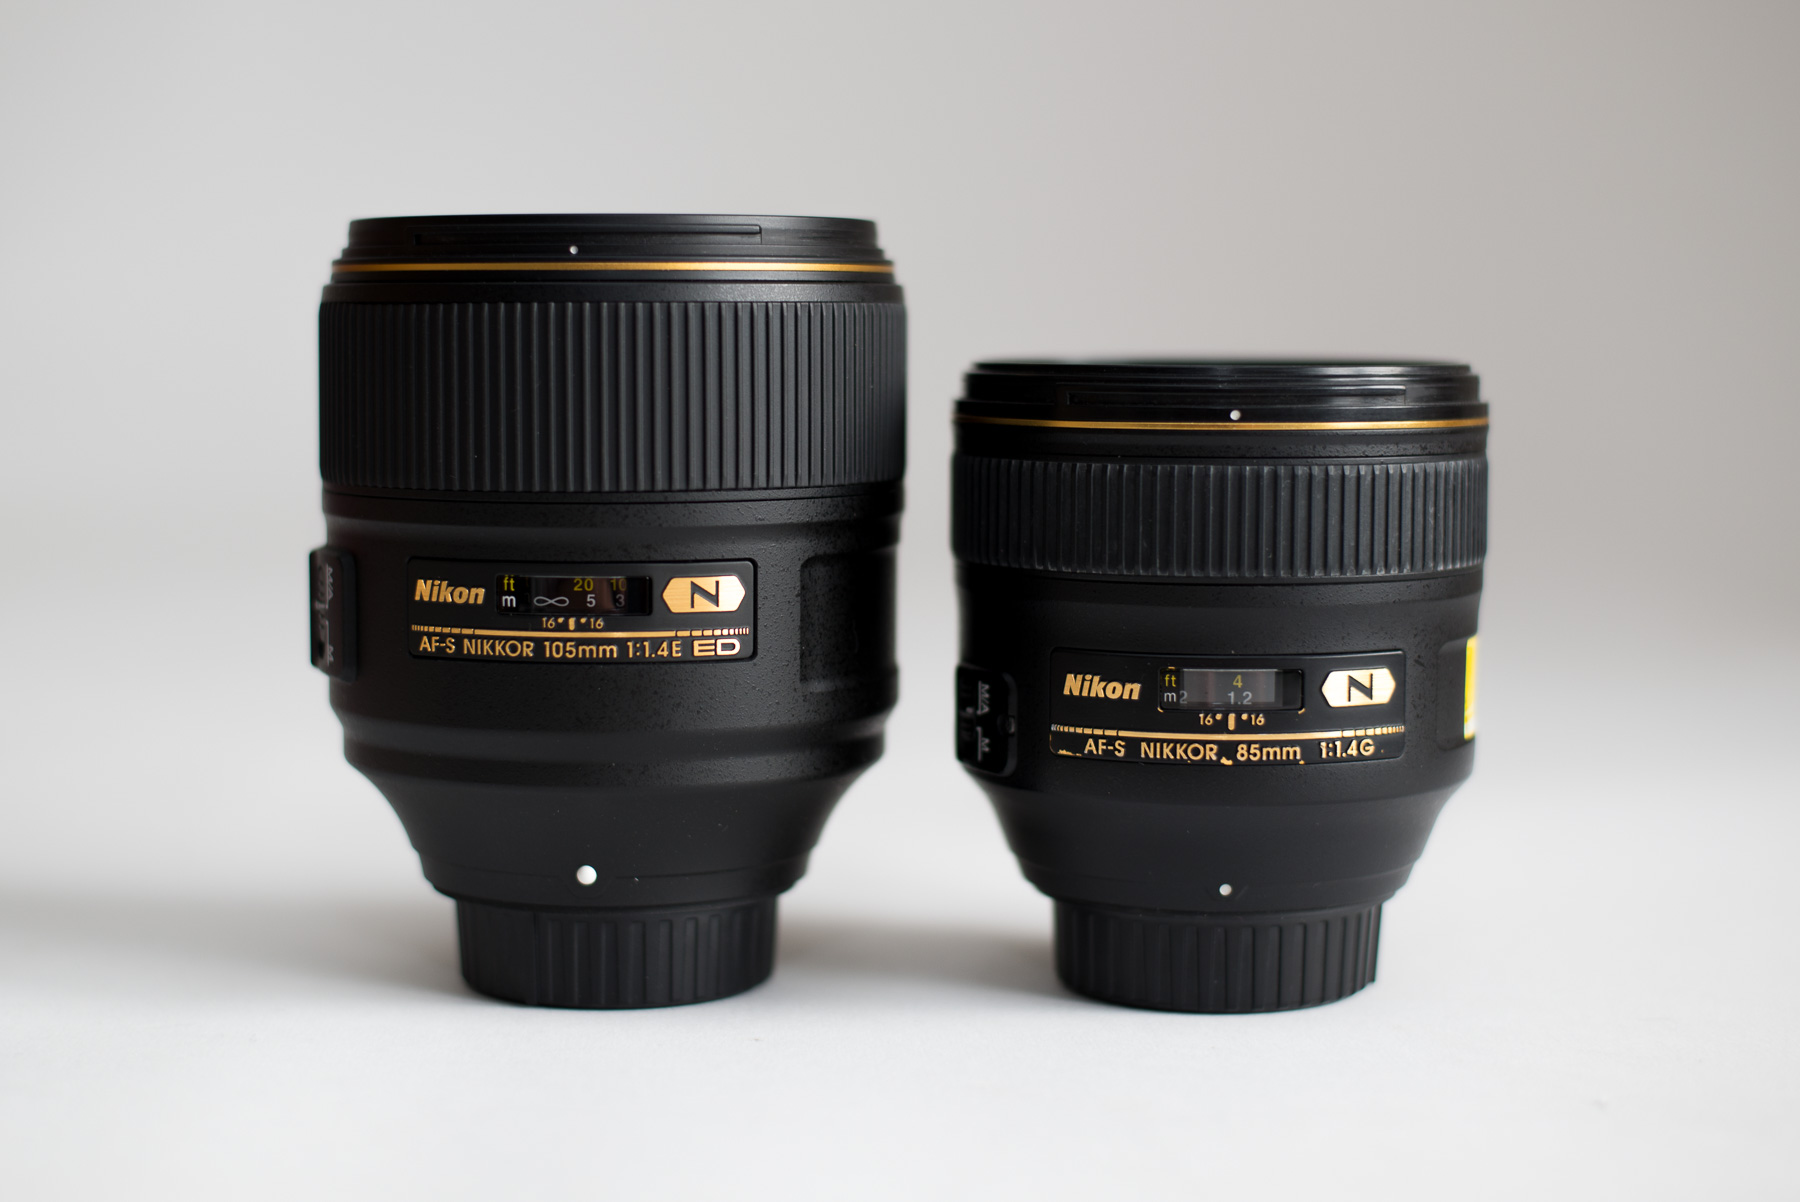 nikon af s nikkor mm f e ed review and comparison with the g lensaspx